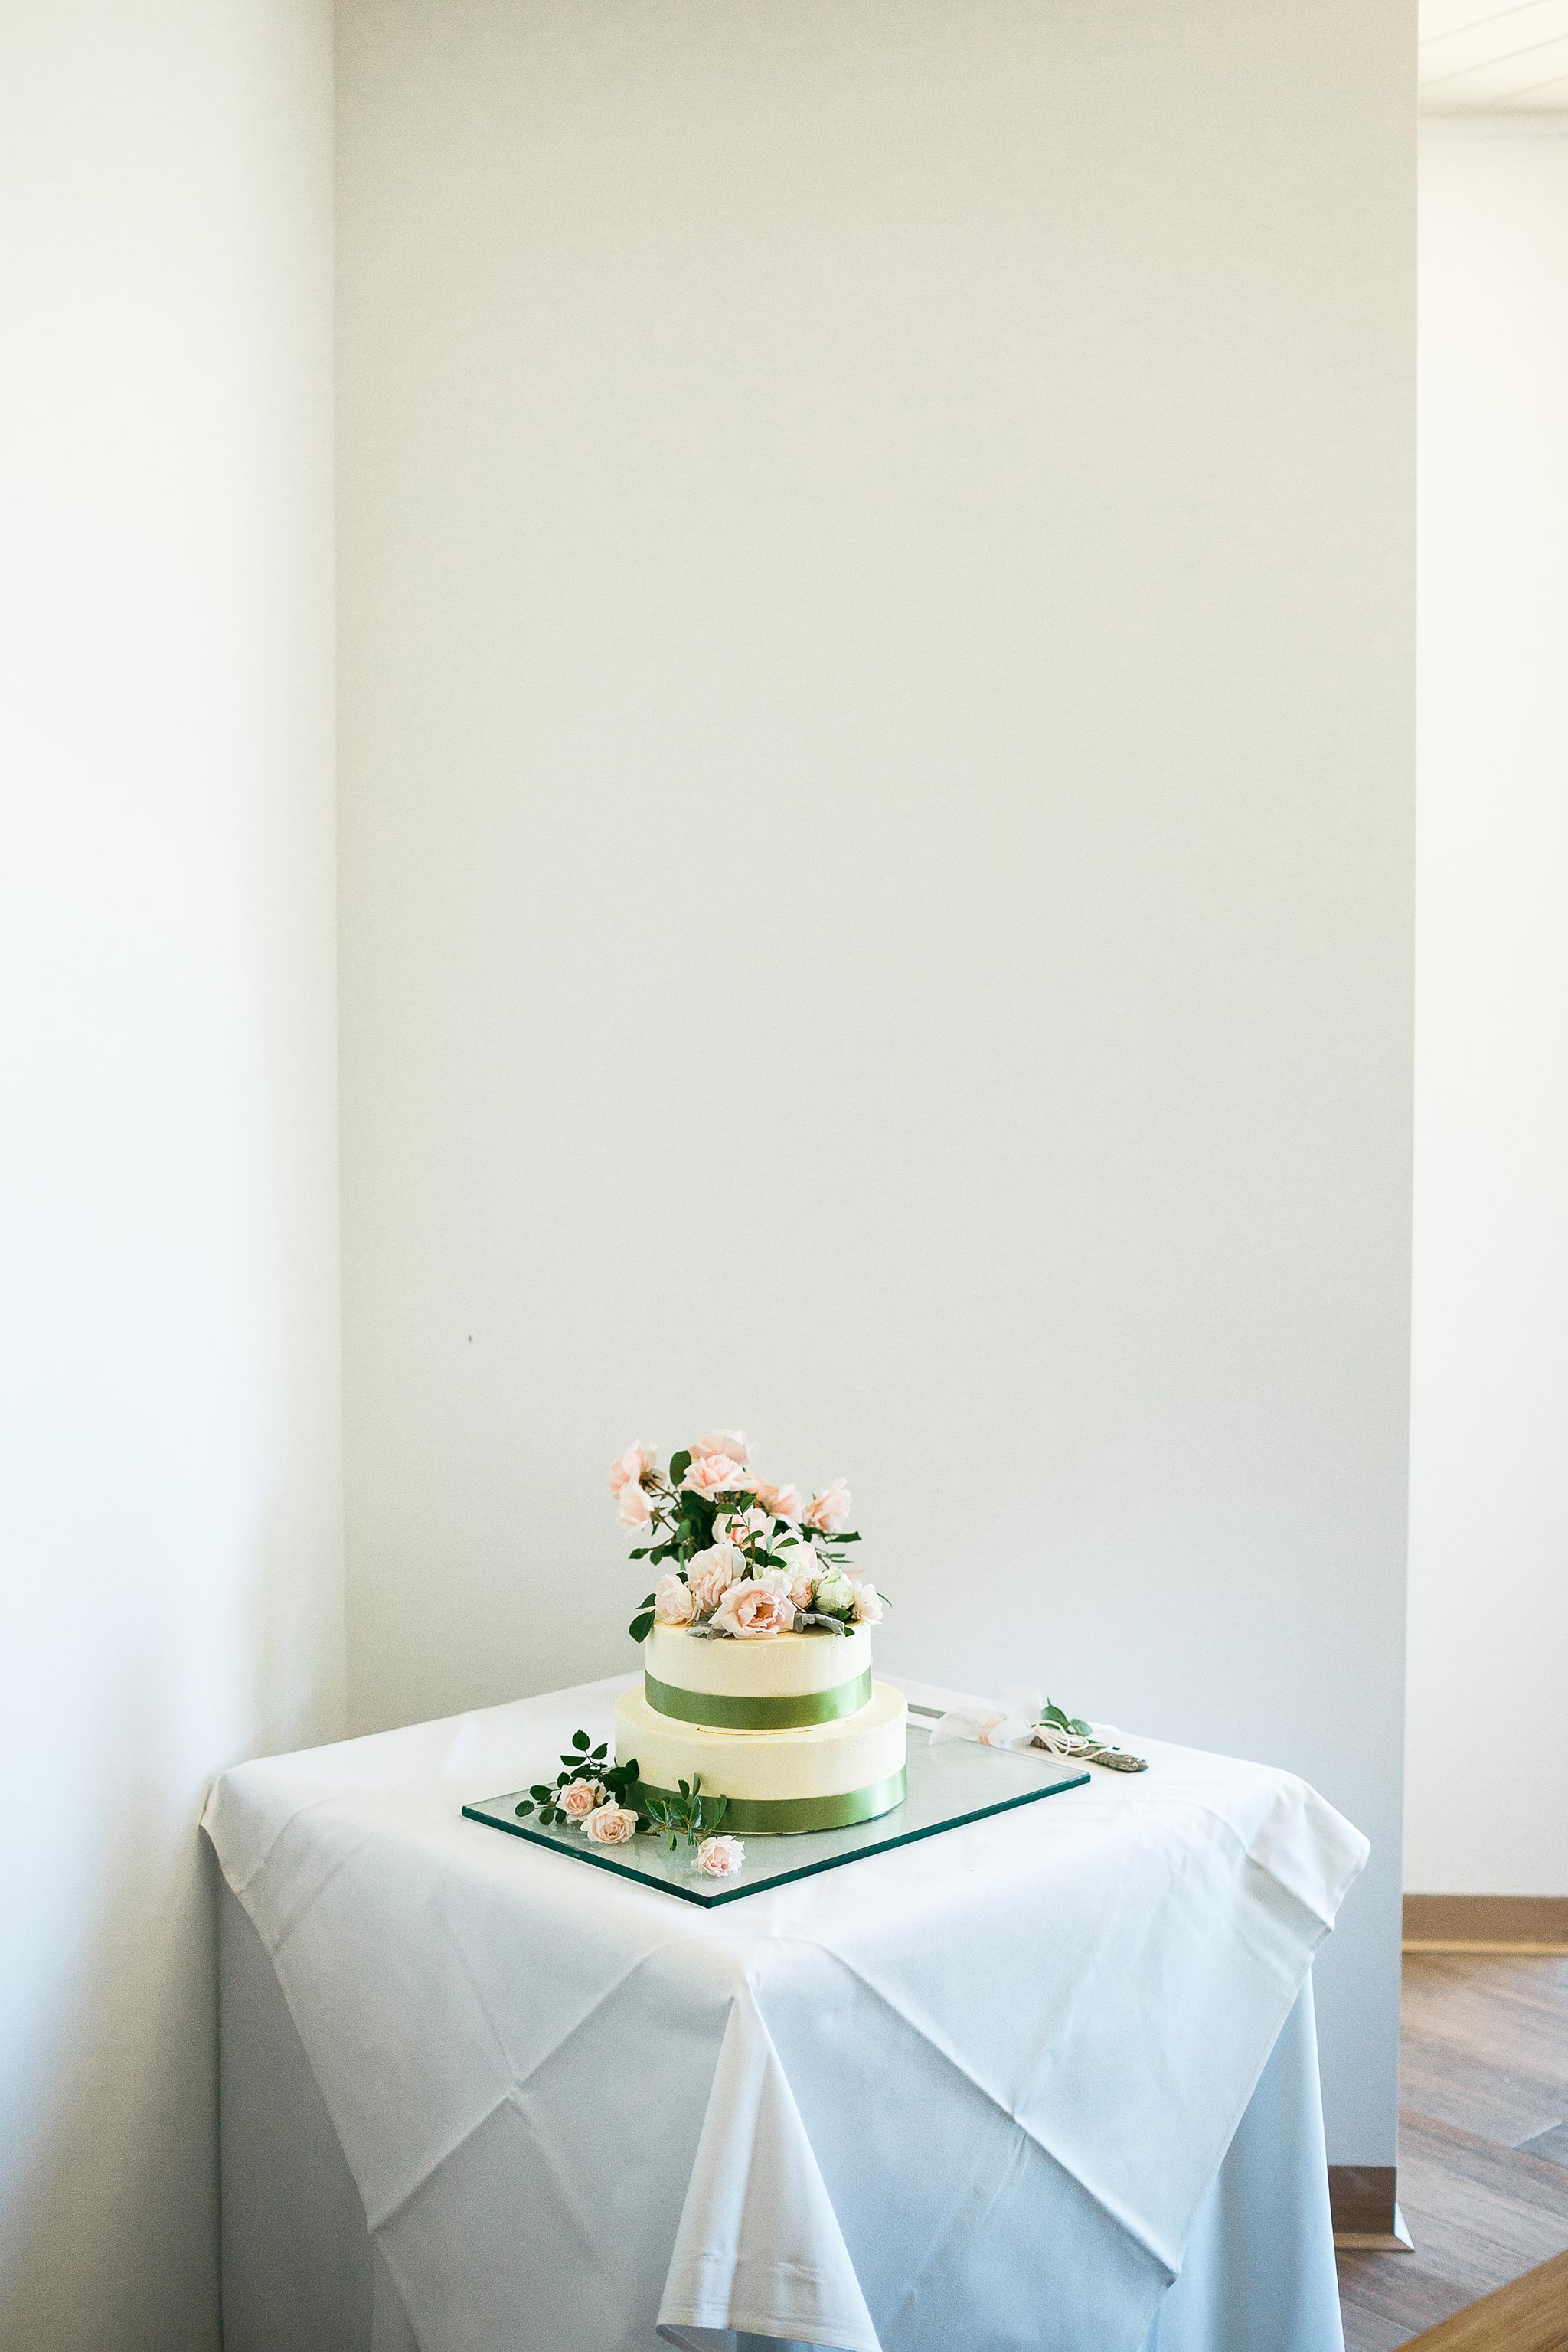 Daylesford-Lake-House-Wedding-Photography-wedding-cake